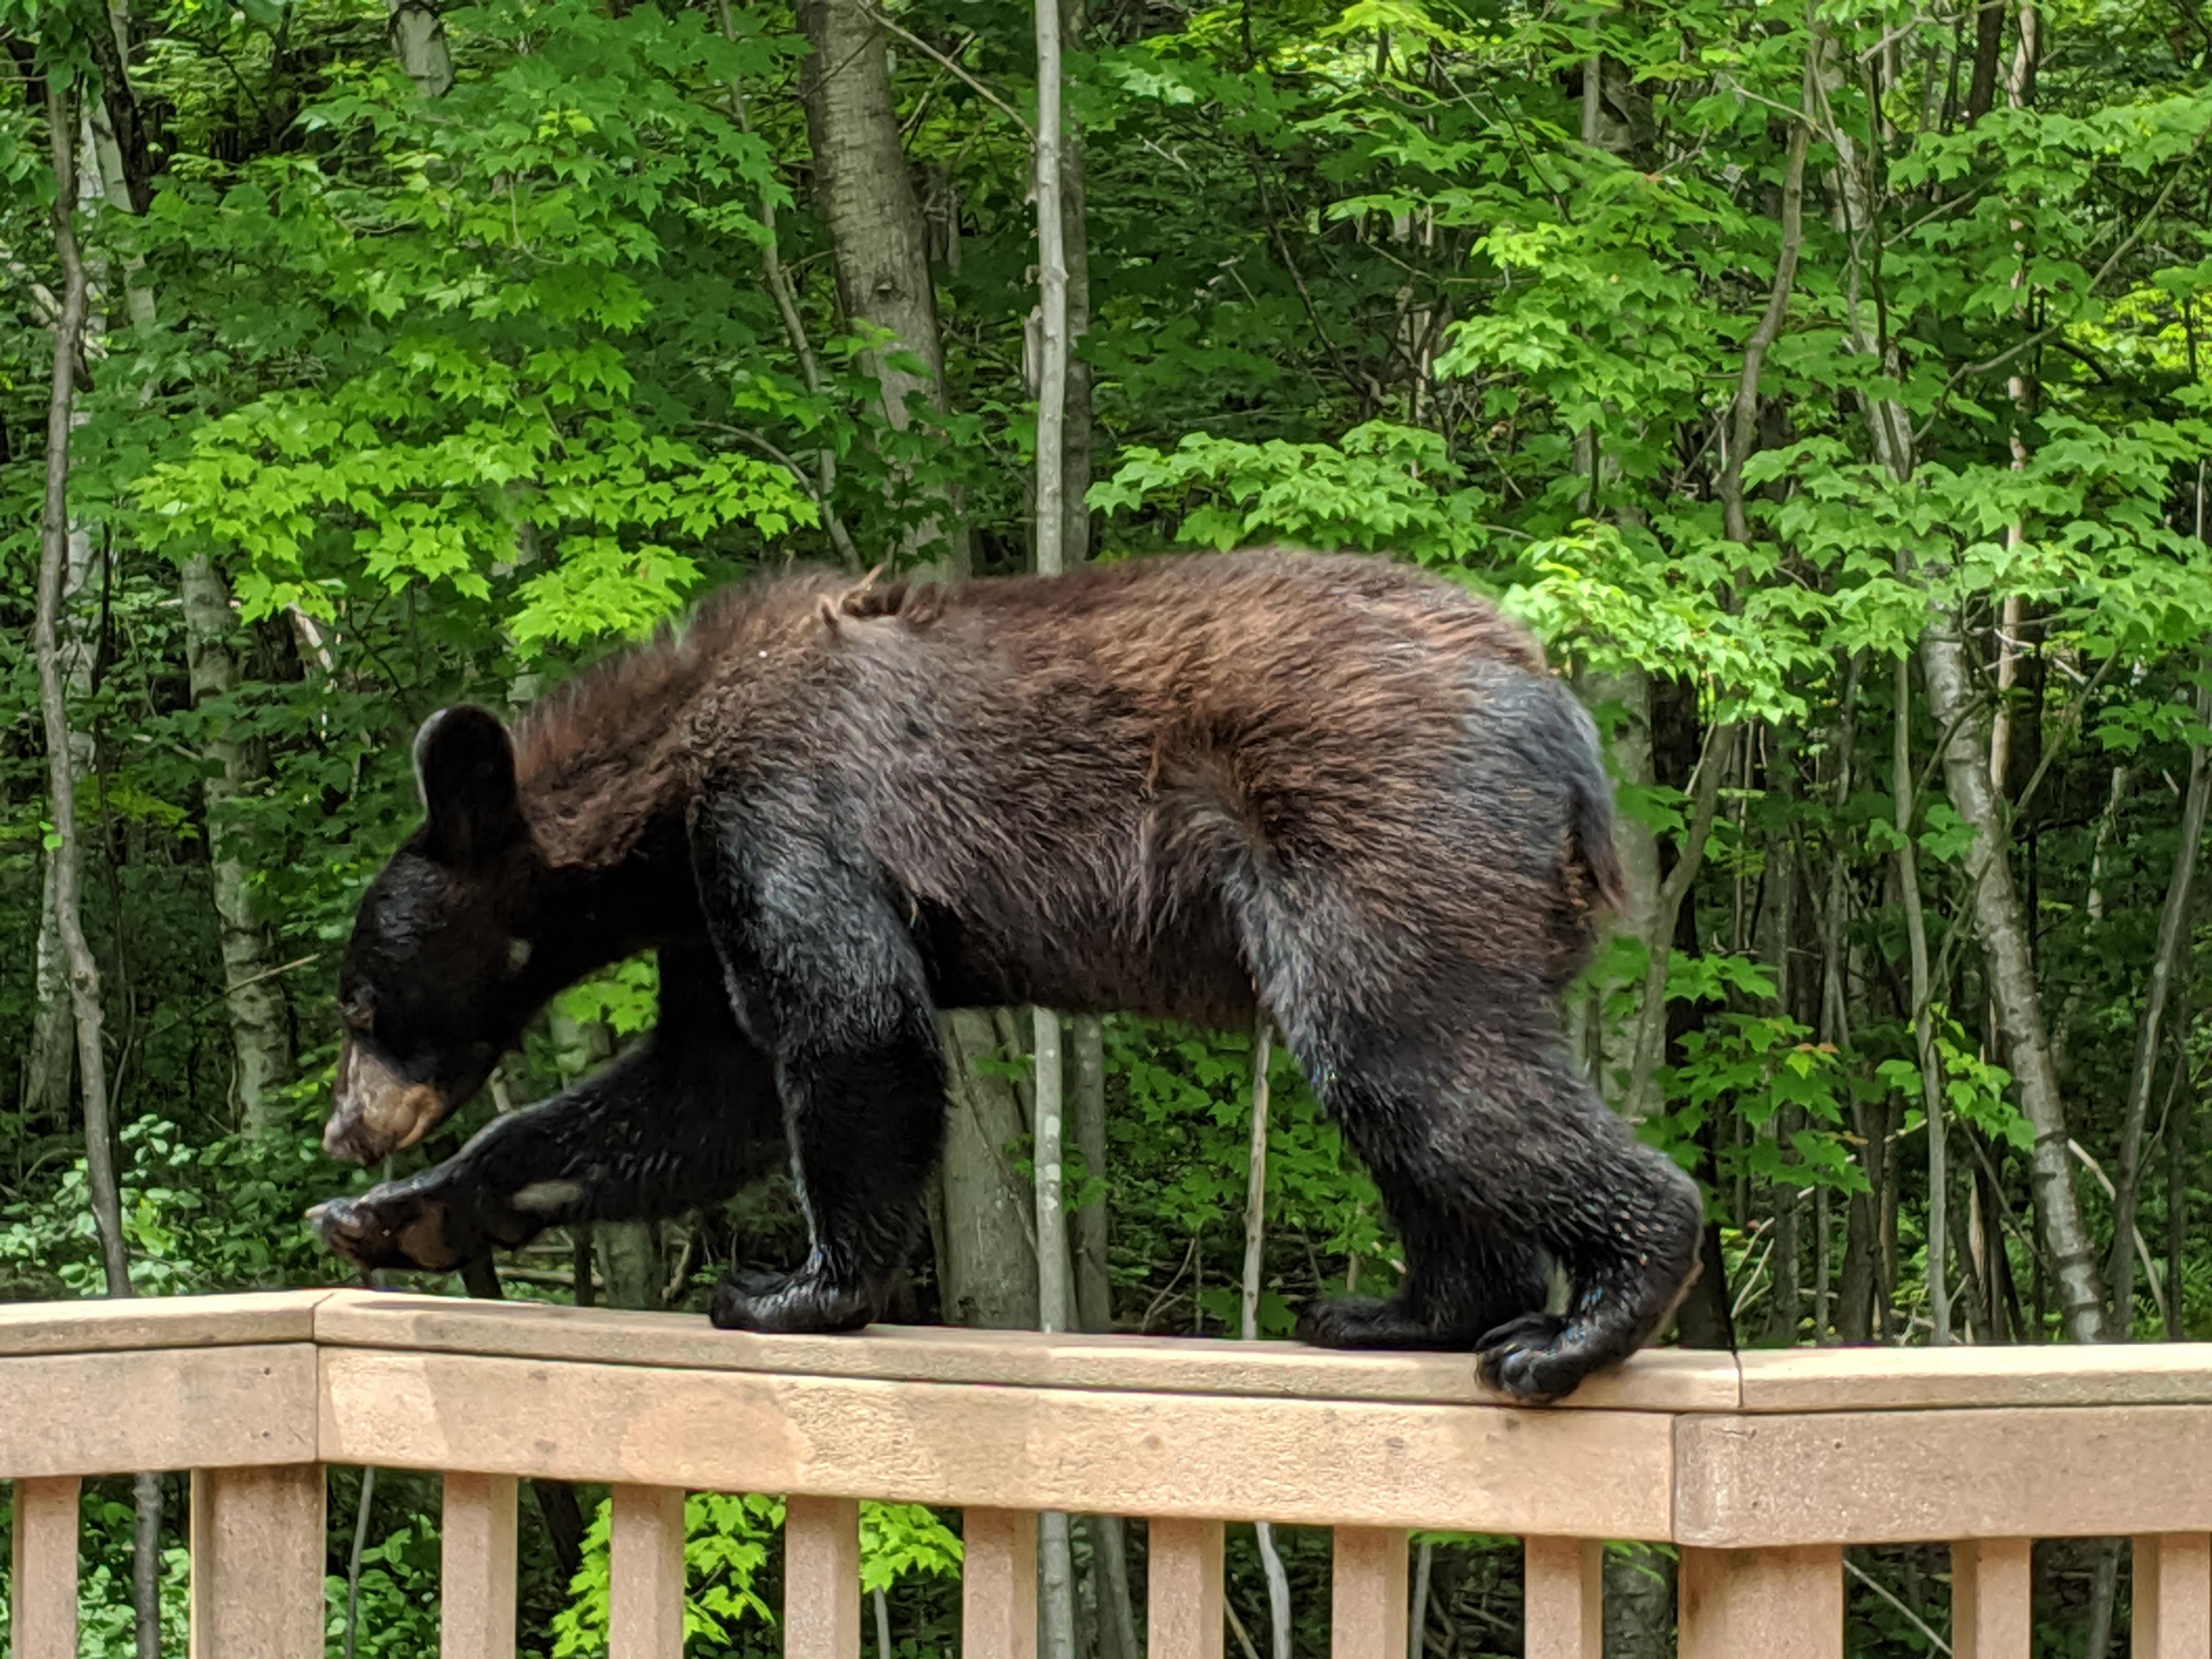 A bear walks along the railing of a deck in Suamico July 1, 2019. (Photo courtesy{ }Sherri Baierl)